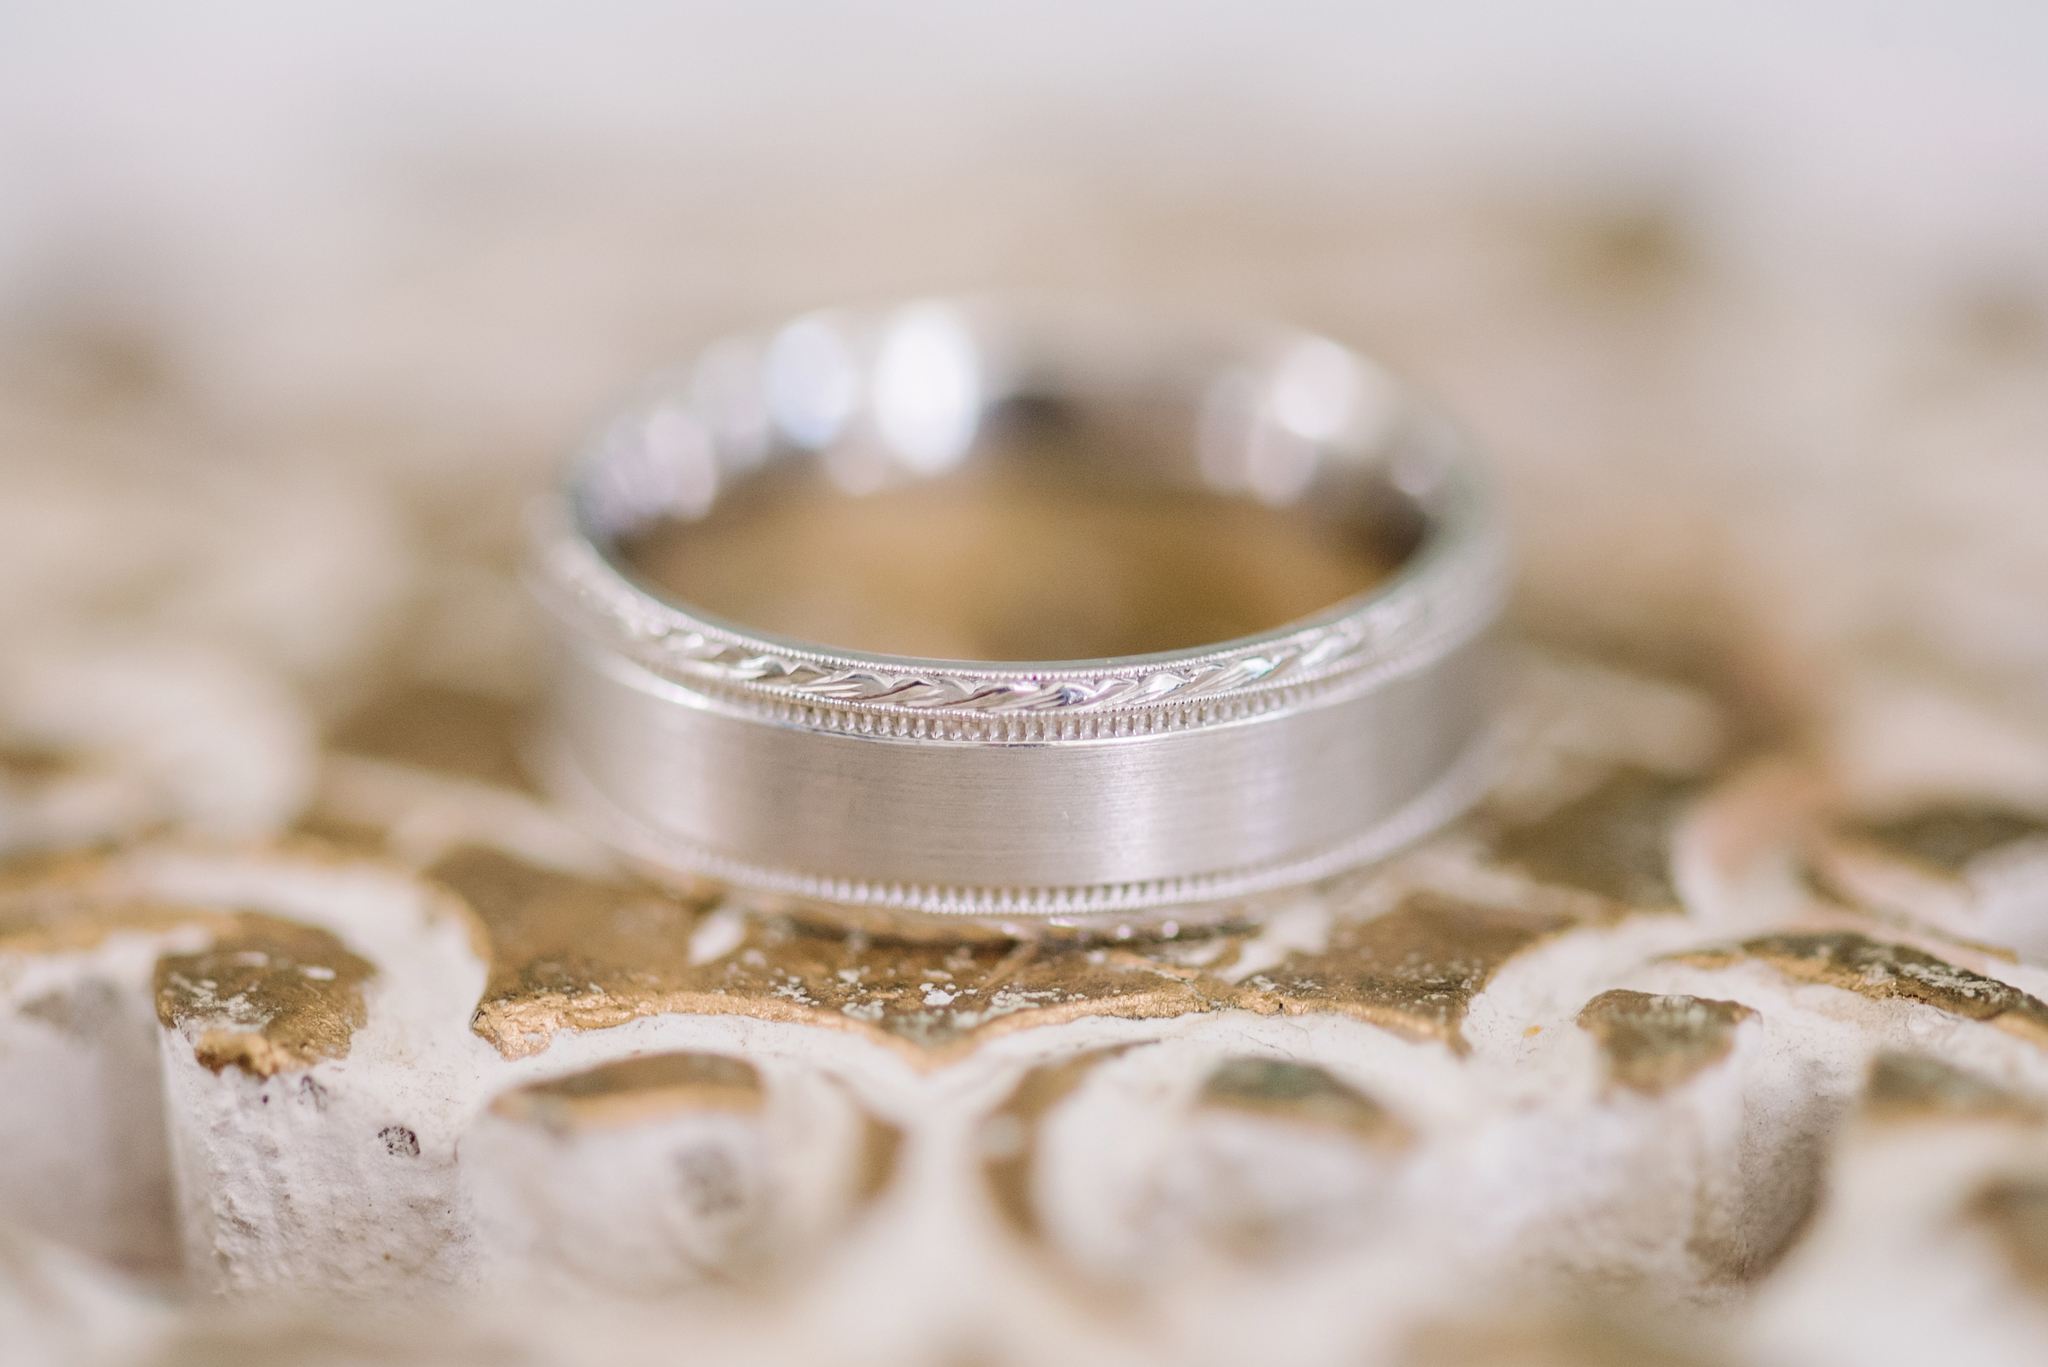 Men's wedding band in white gold on a swirling rose gold background